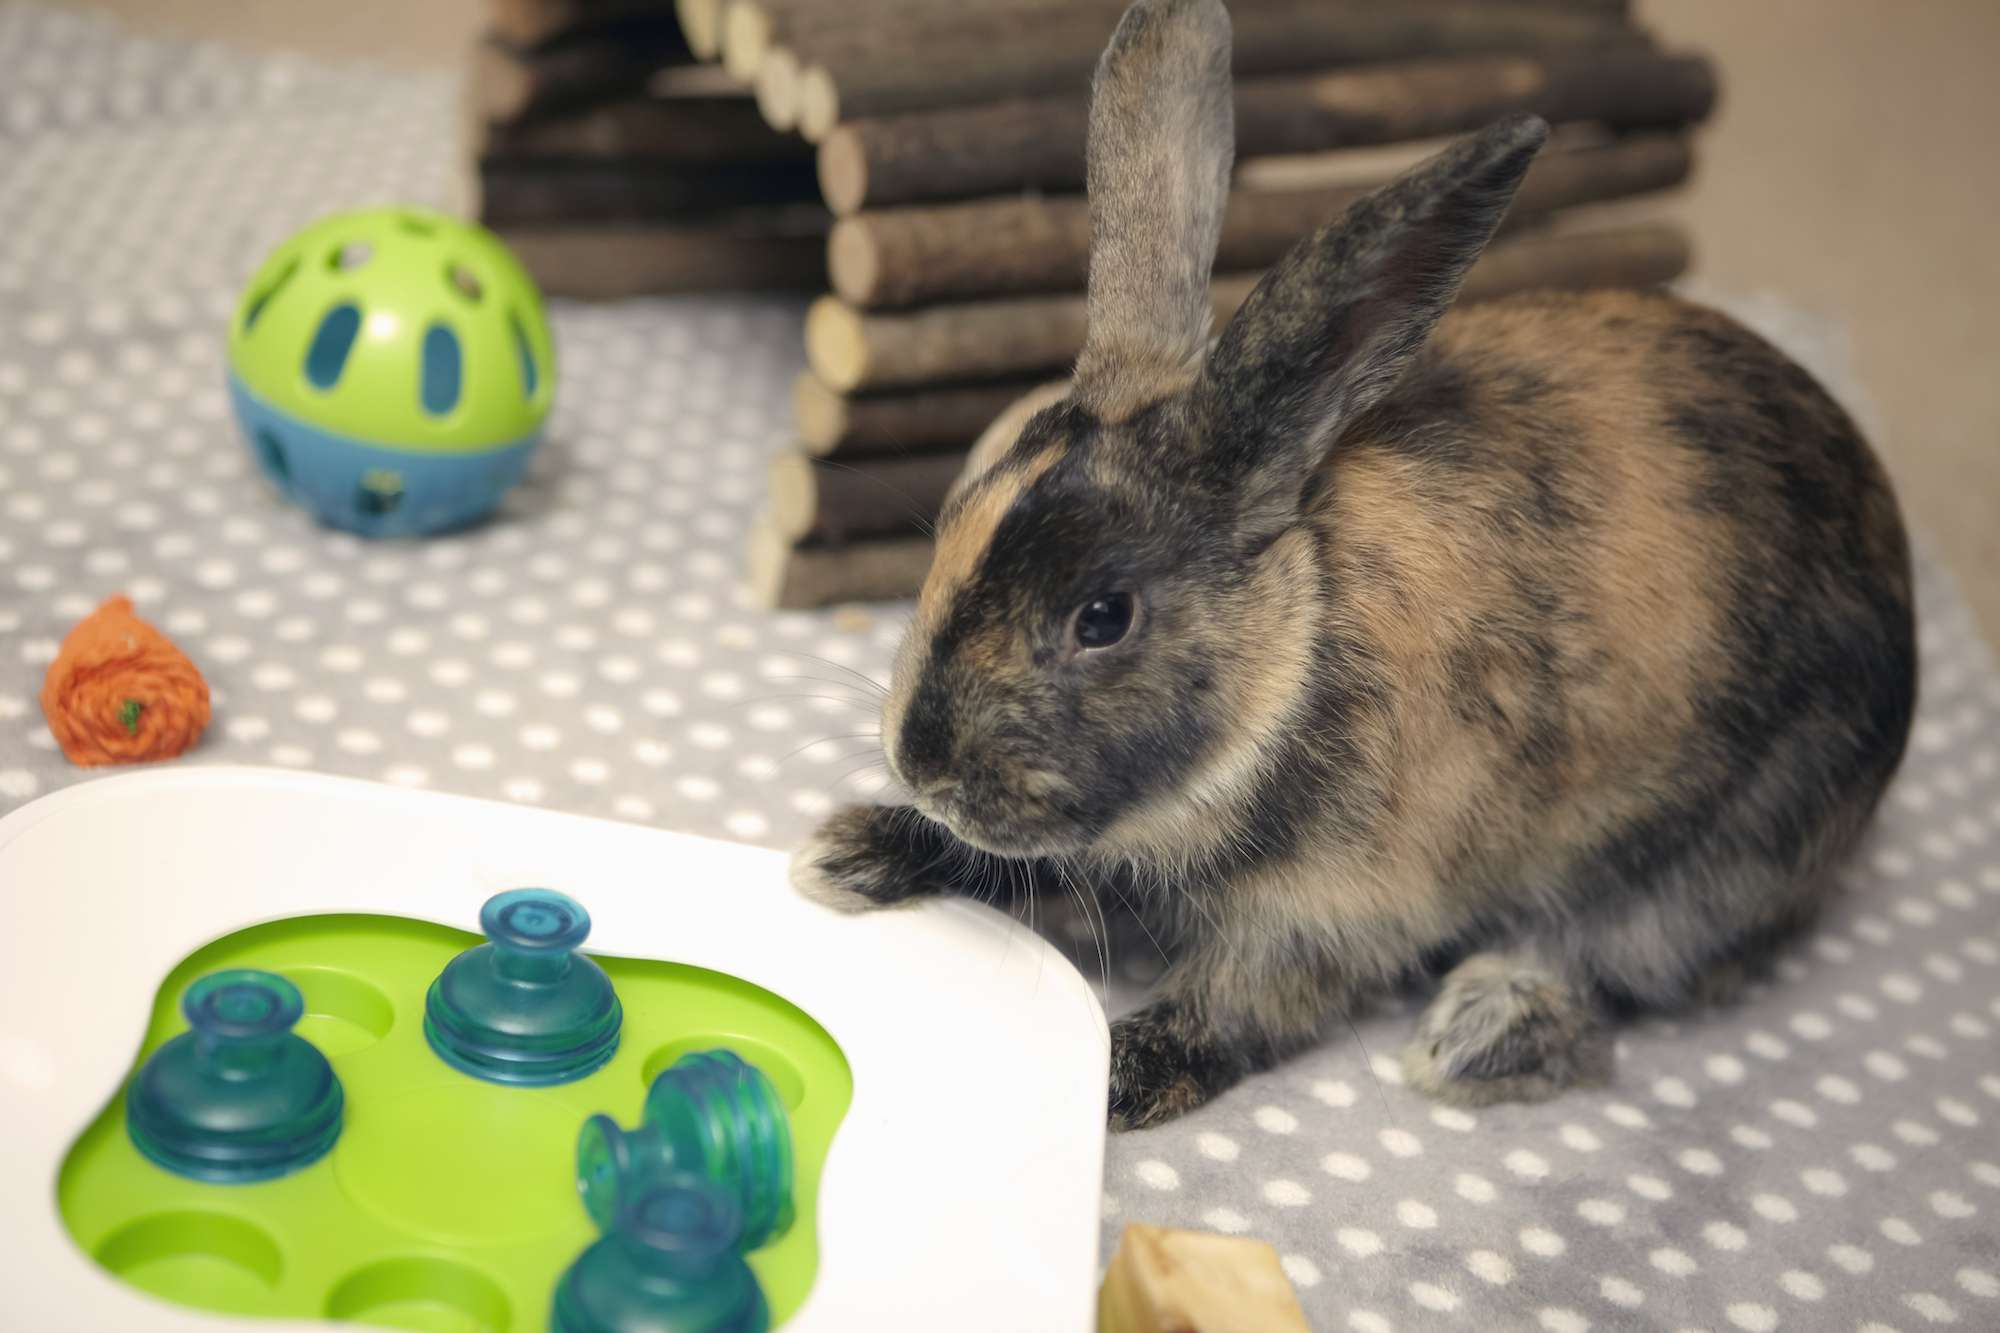 Pet rabbit playing with toys